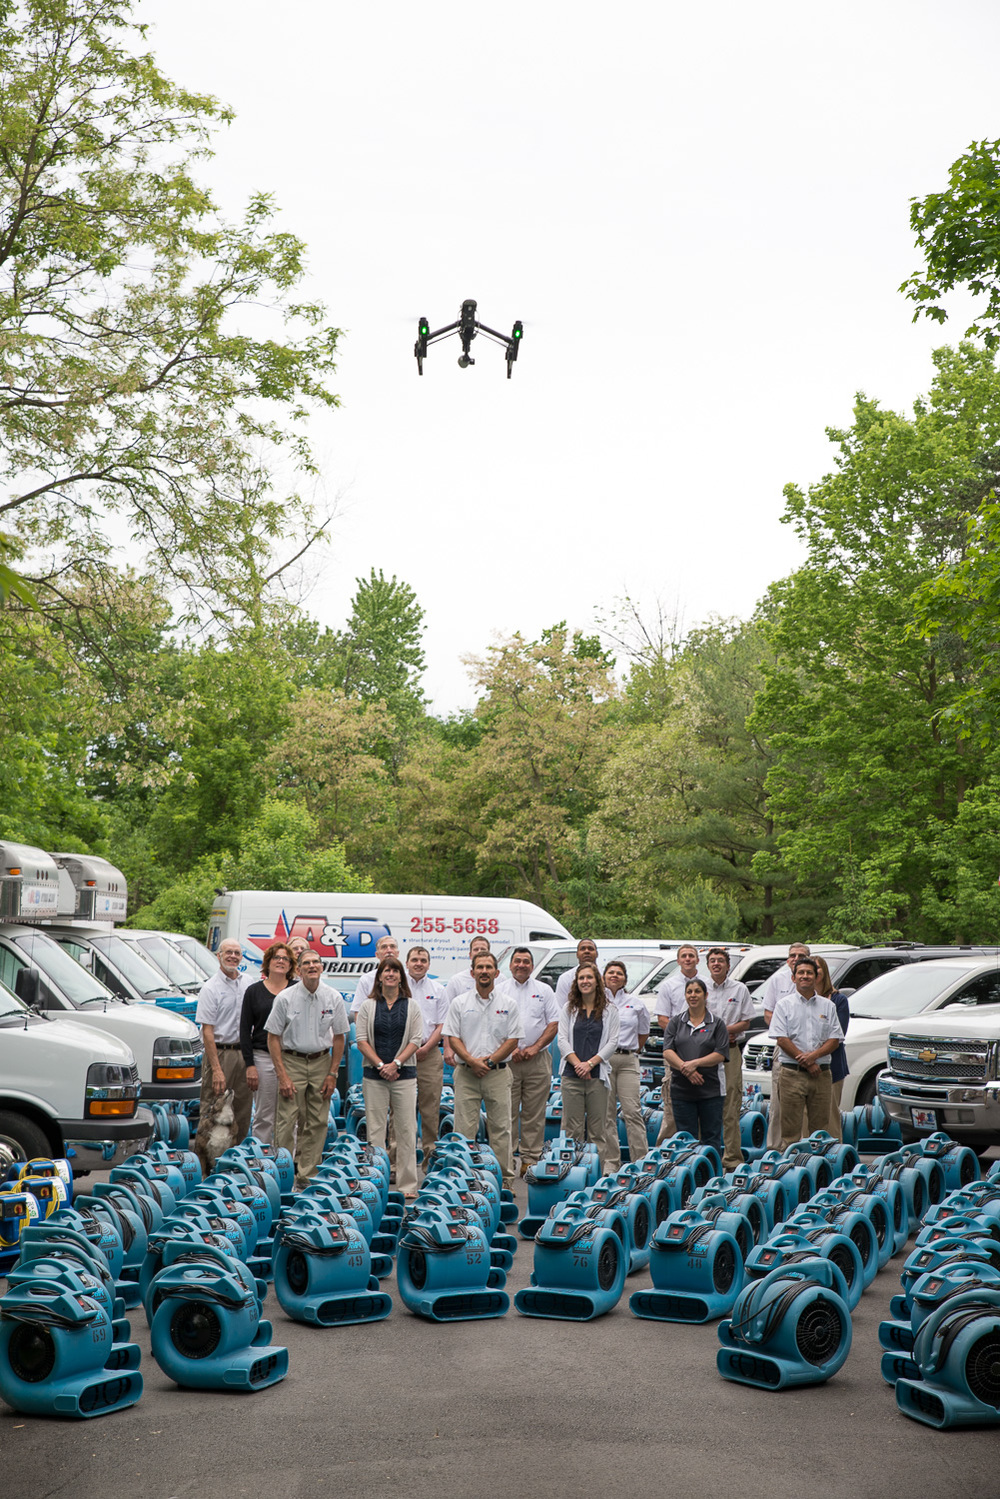 Commercial Photography Behind The Scenes at A&D in Indianapolis - Drone Fly-Over